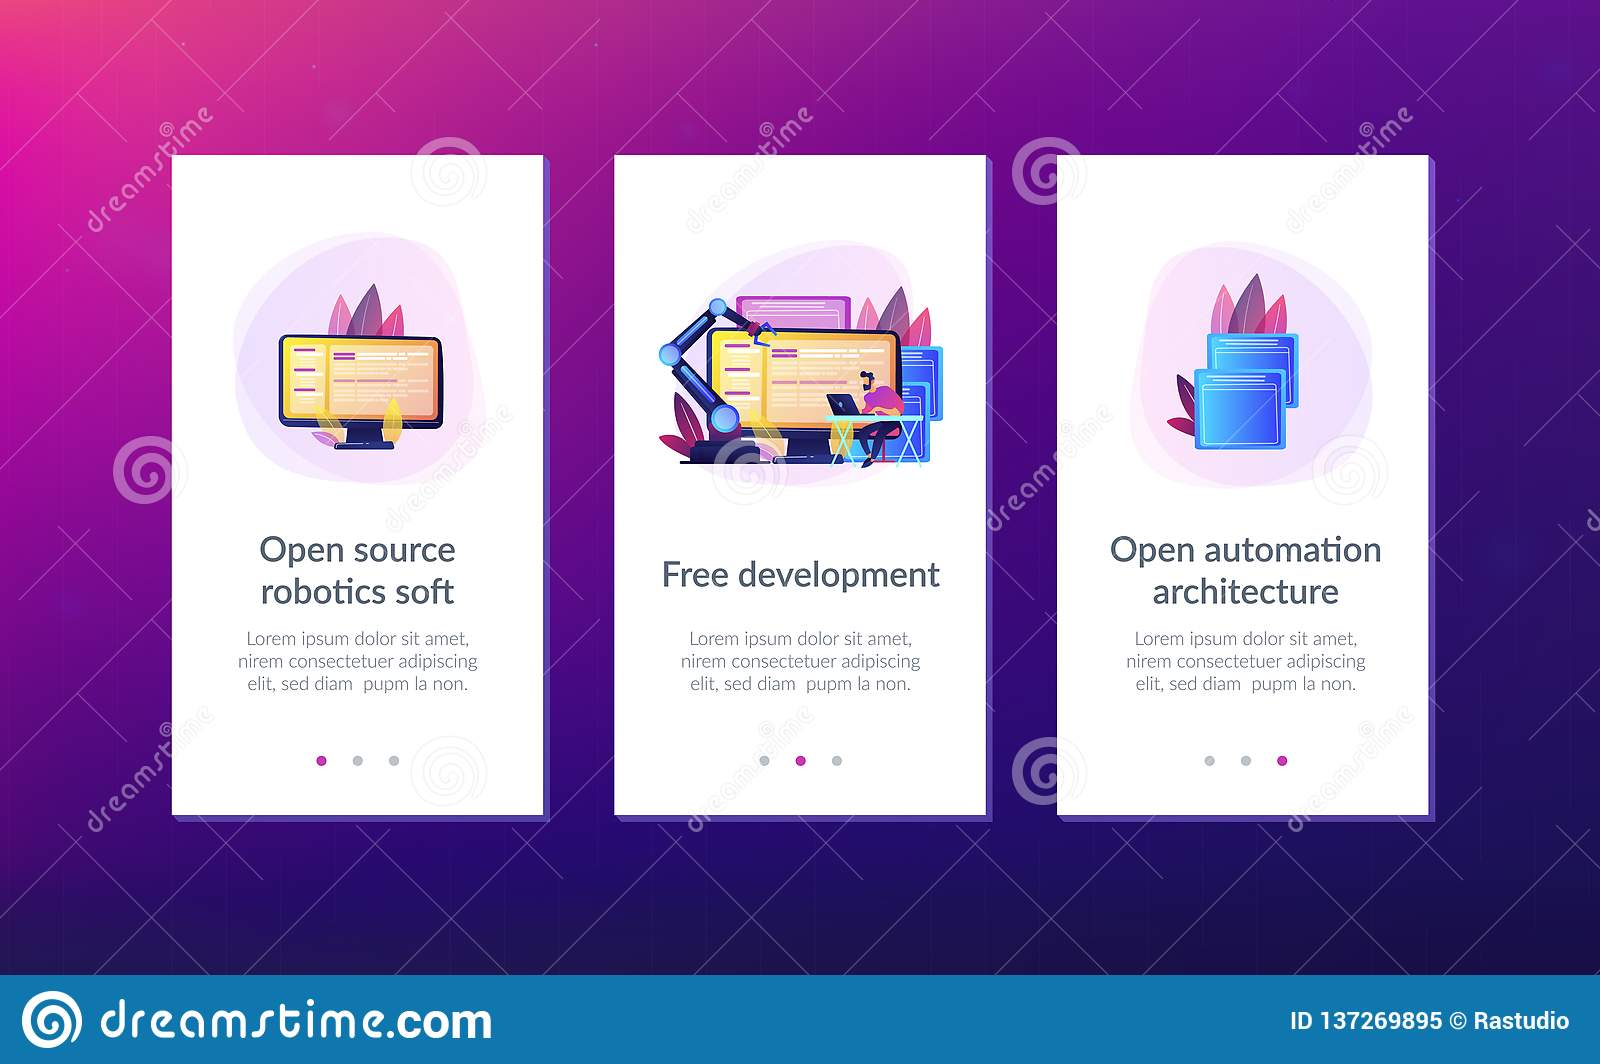 Open Automation Architecture App Interface Template  Stock